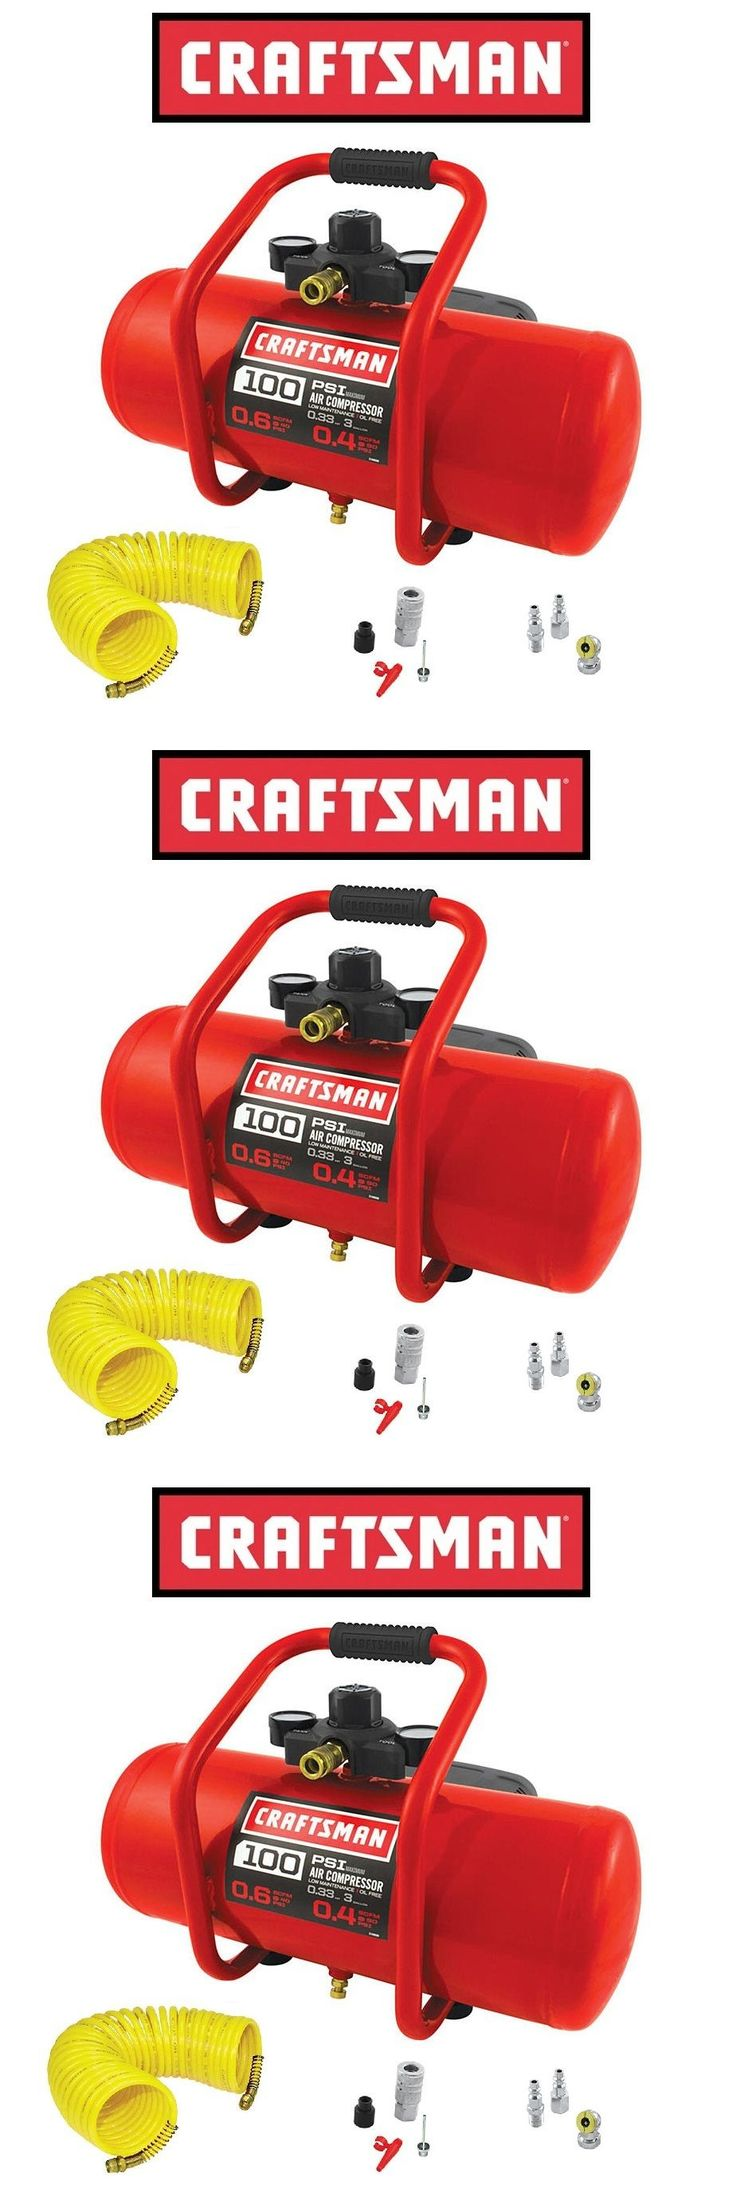 Air Compressors 30506: Craftsman 3 Gallon Portable Electric Air Compressor Tank + 25 Hose Kit Tire -> BUY IT NOW ONLY: $78.99 on eBay!